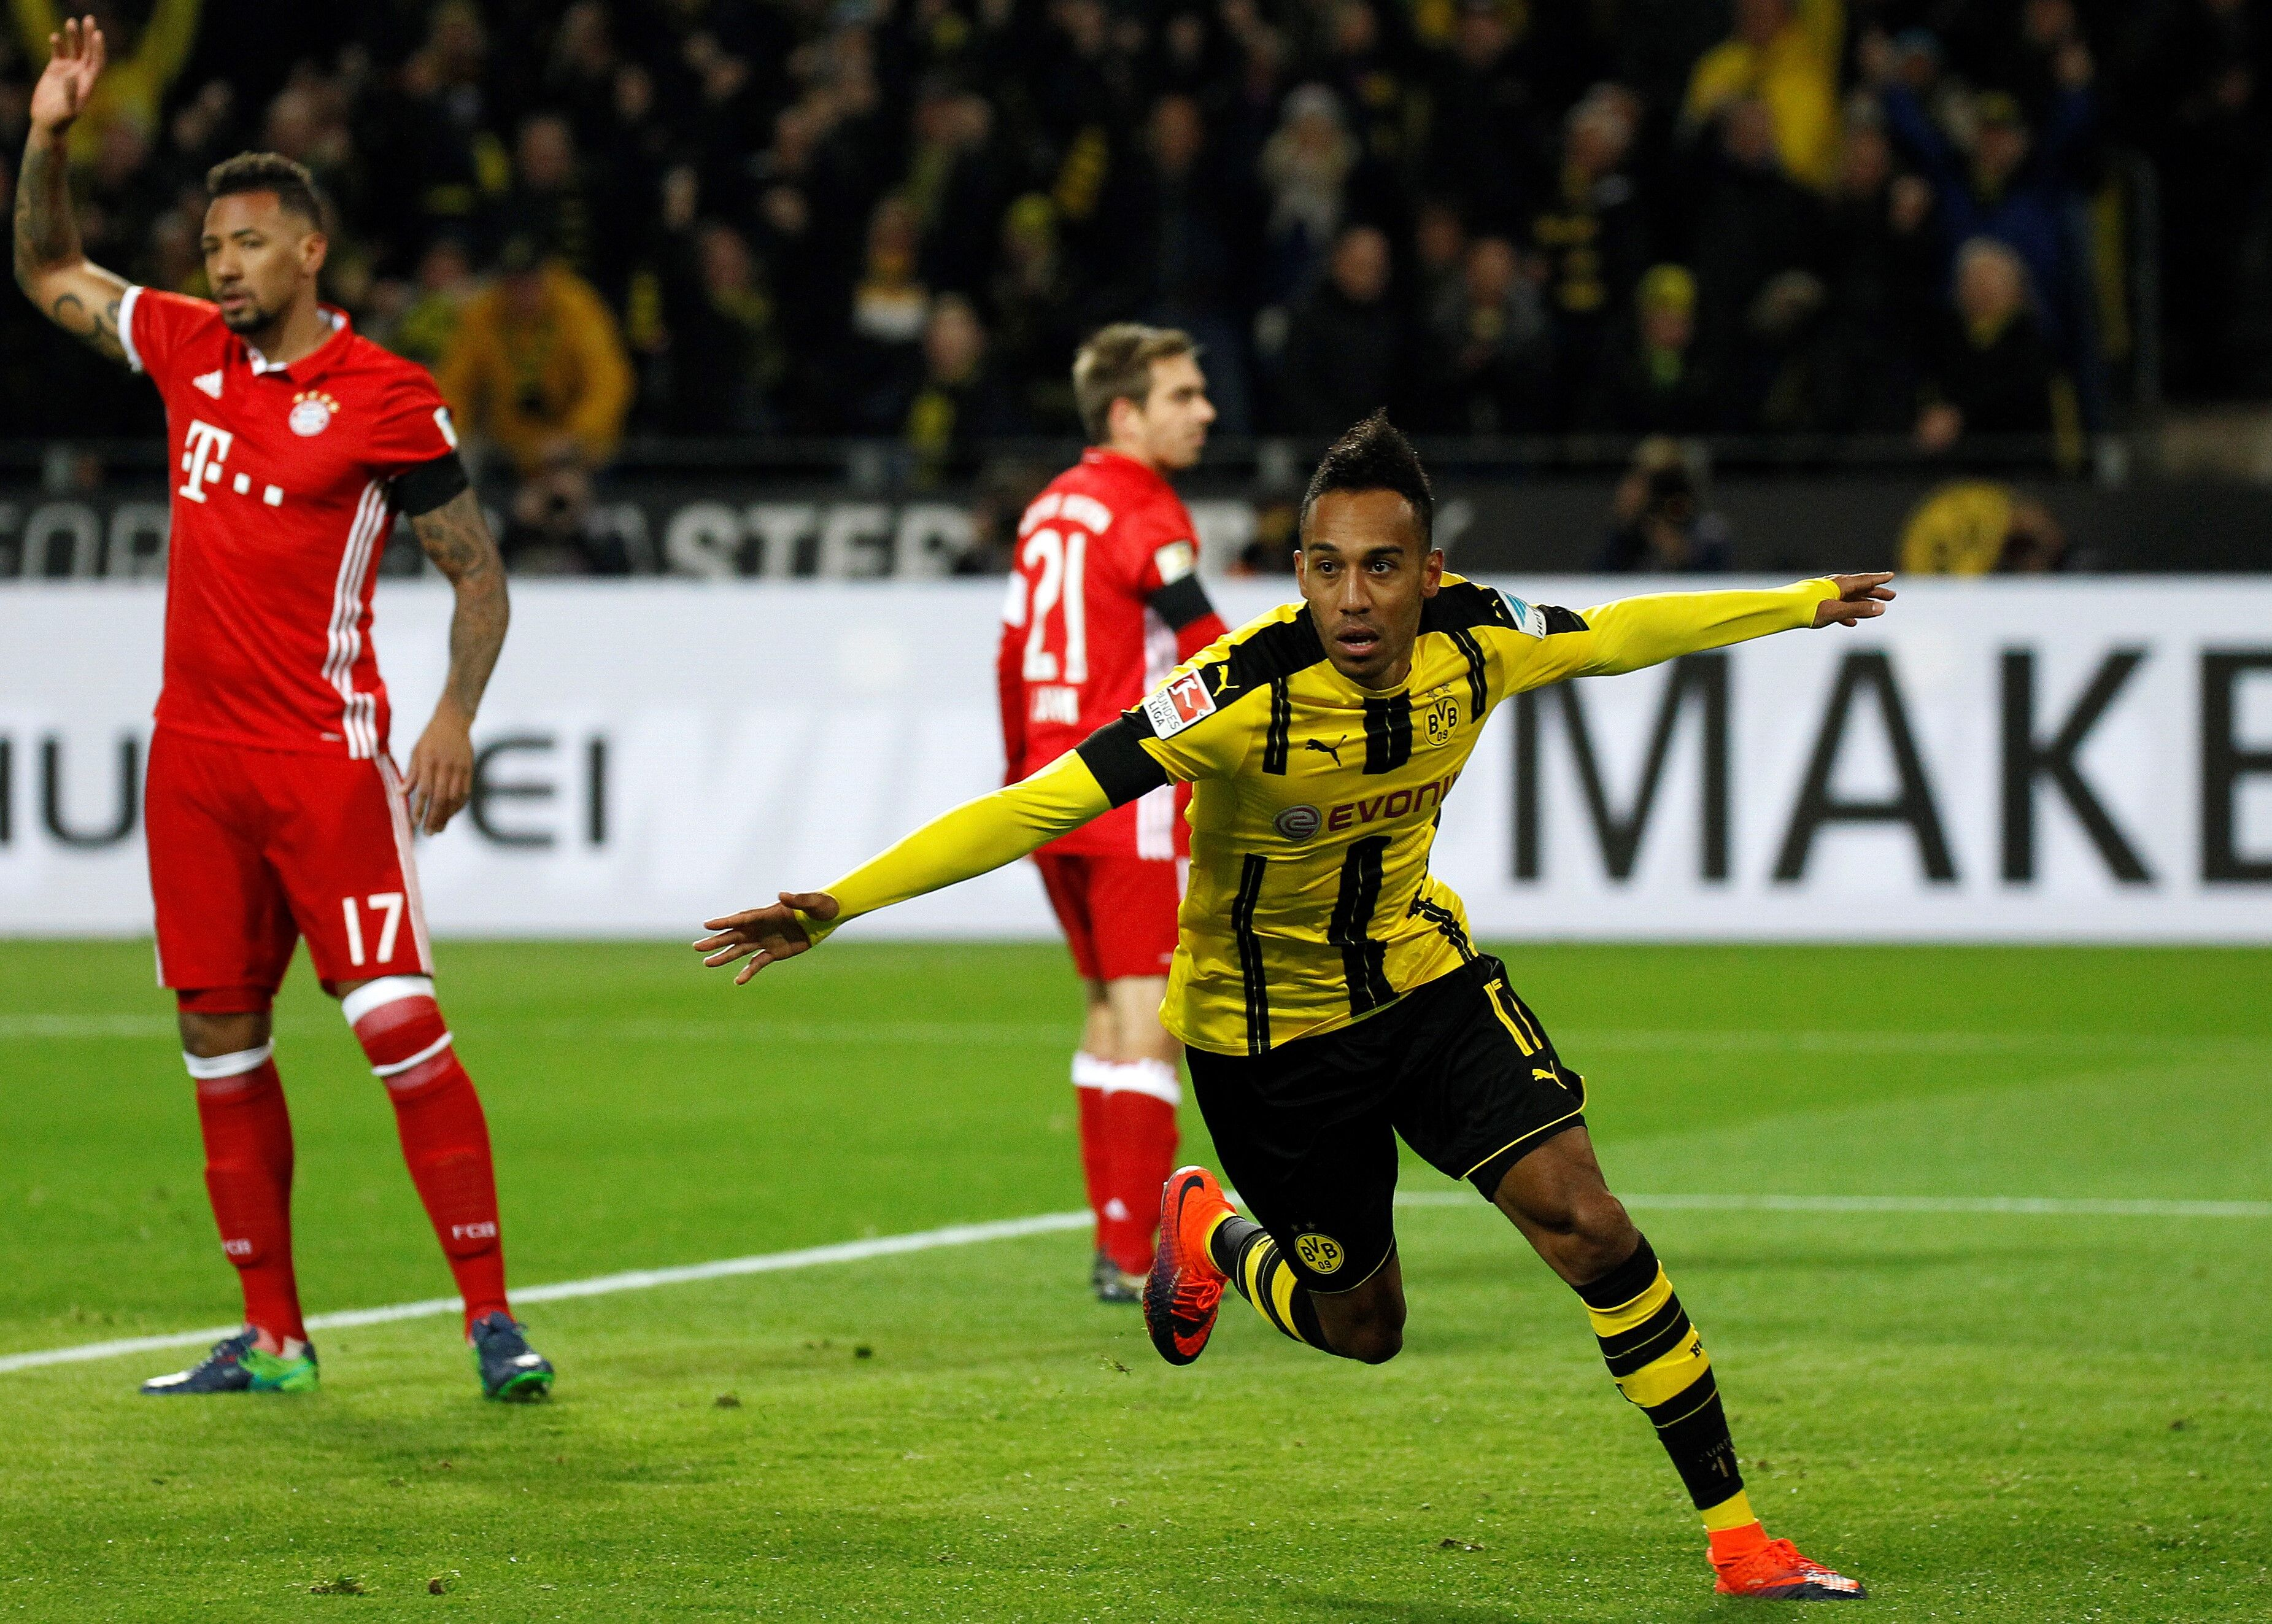 Match preview: Borussia Dortmund vs Bayern Munich